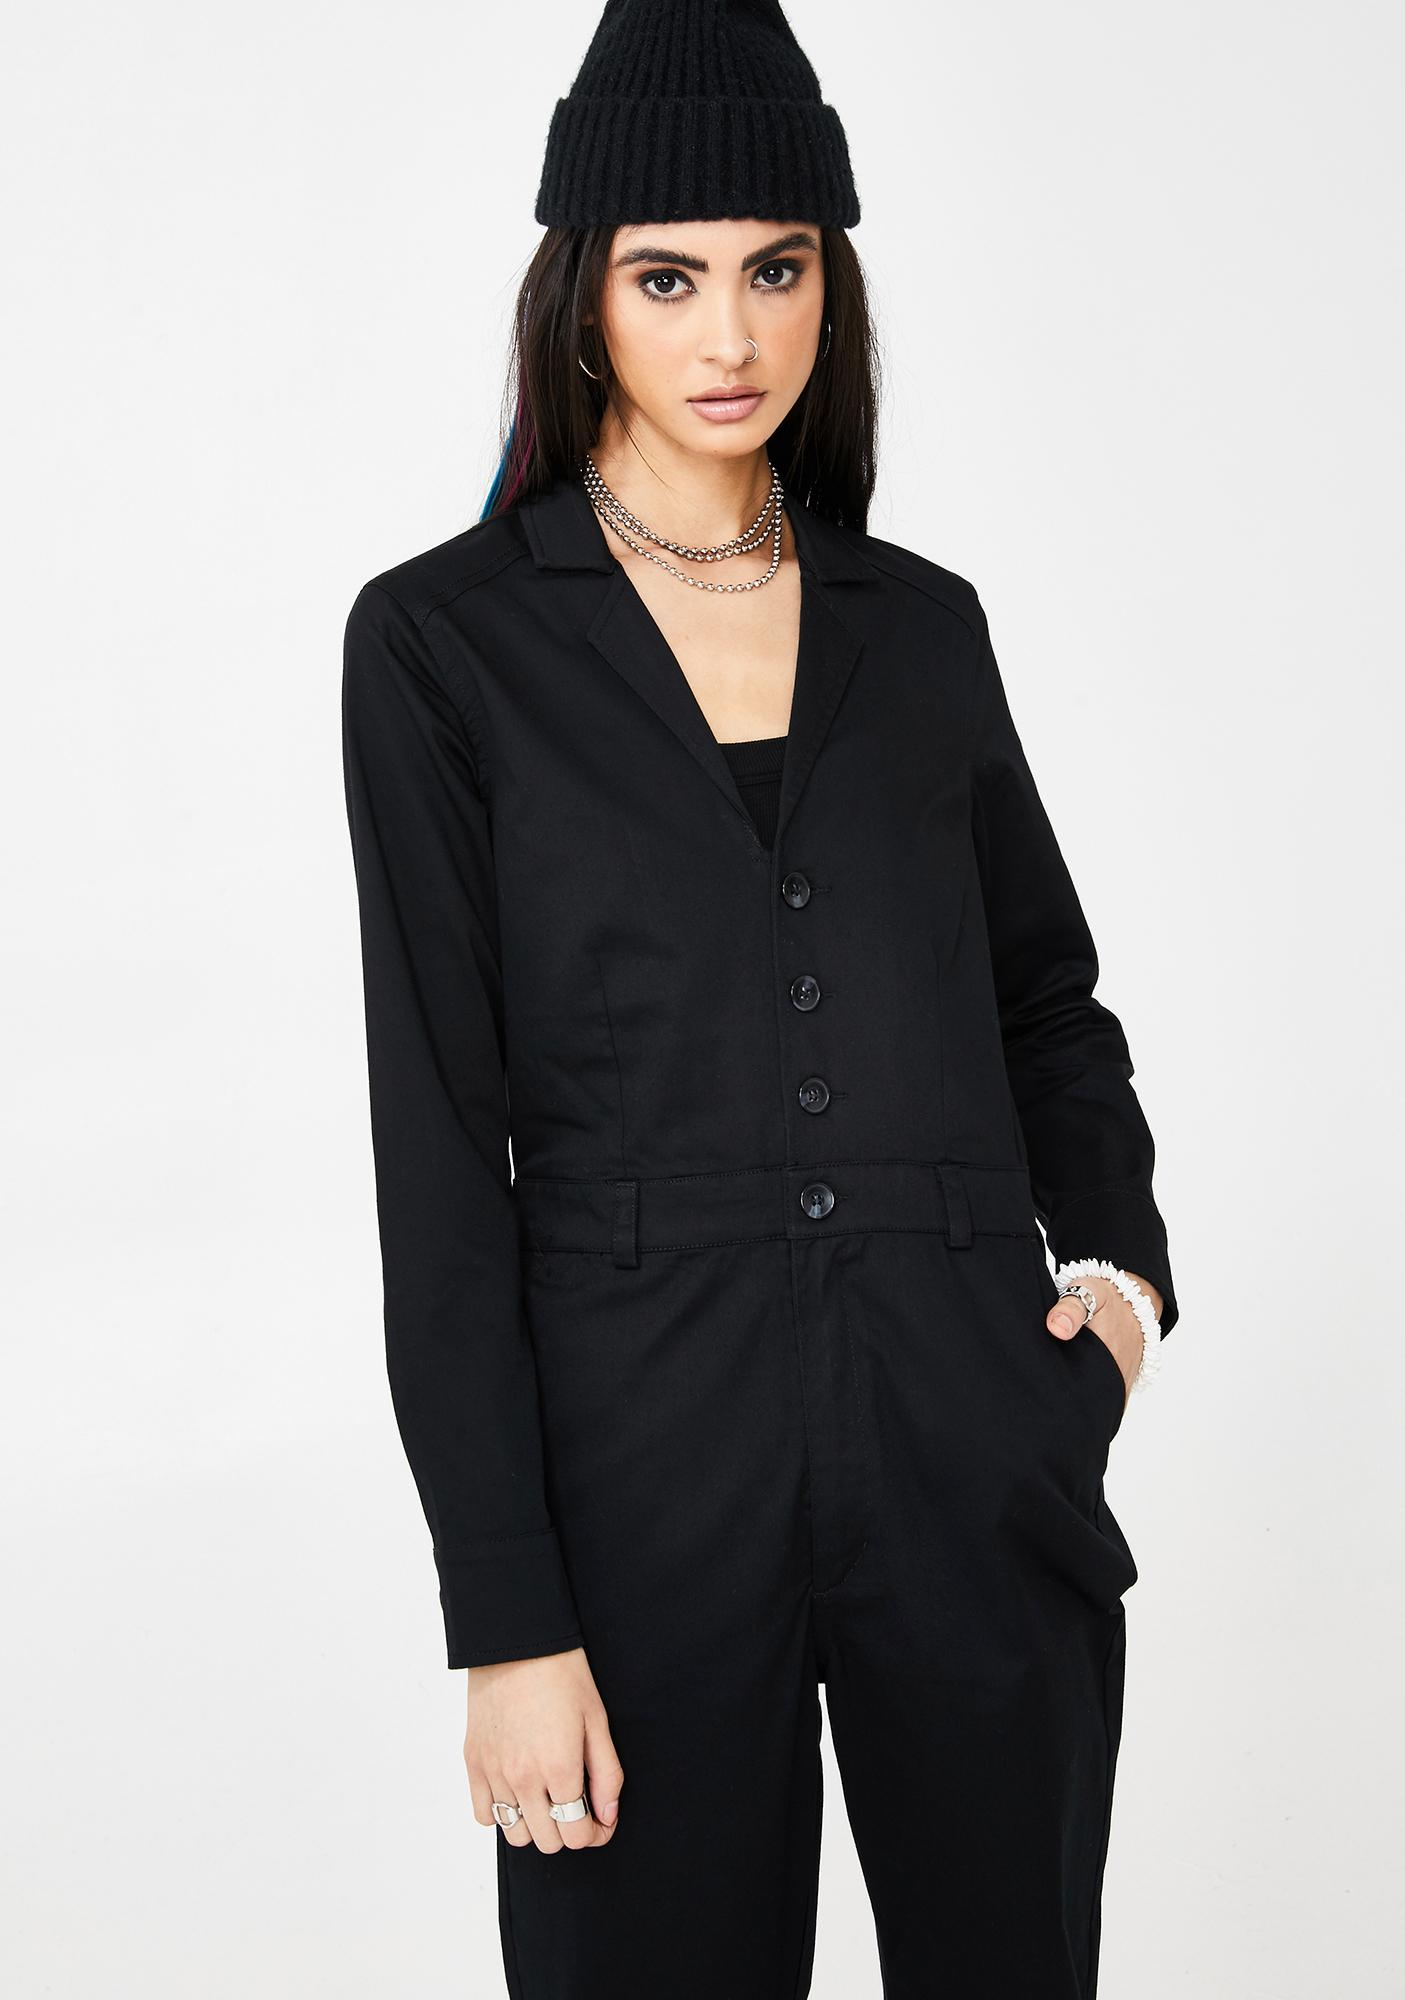 Volcom Frochickie Boiler Suit